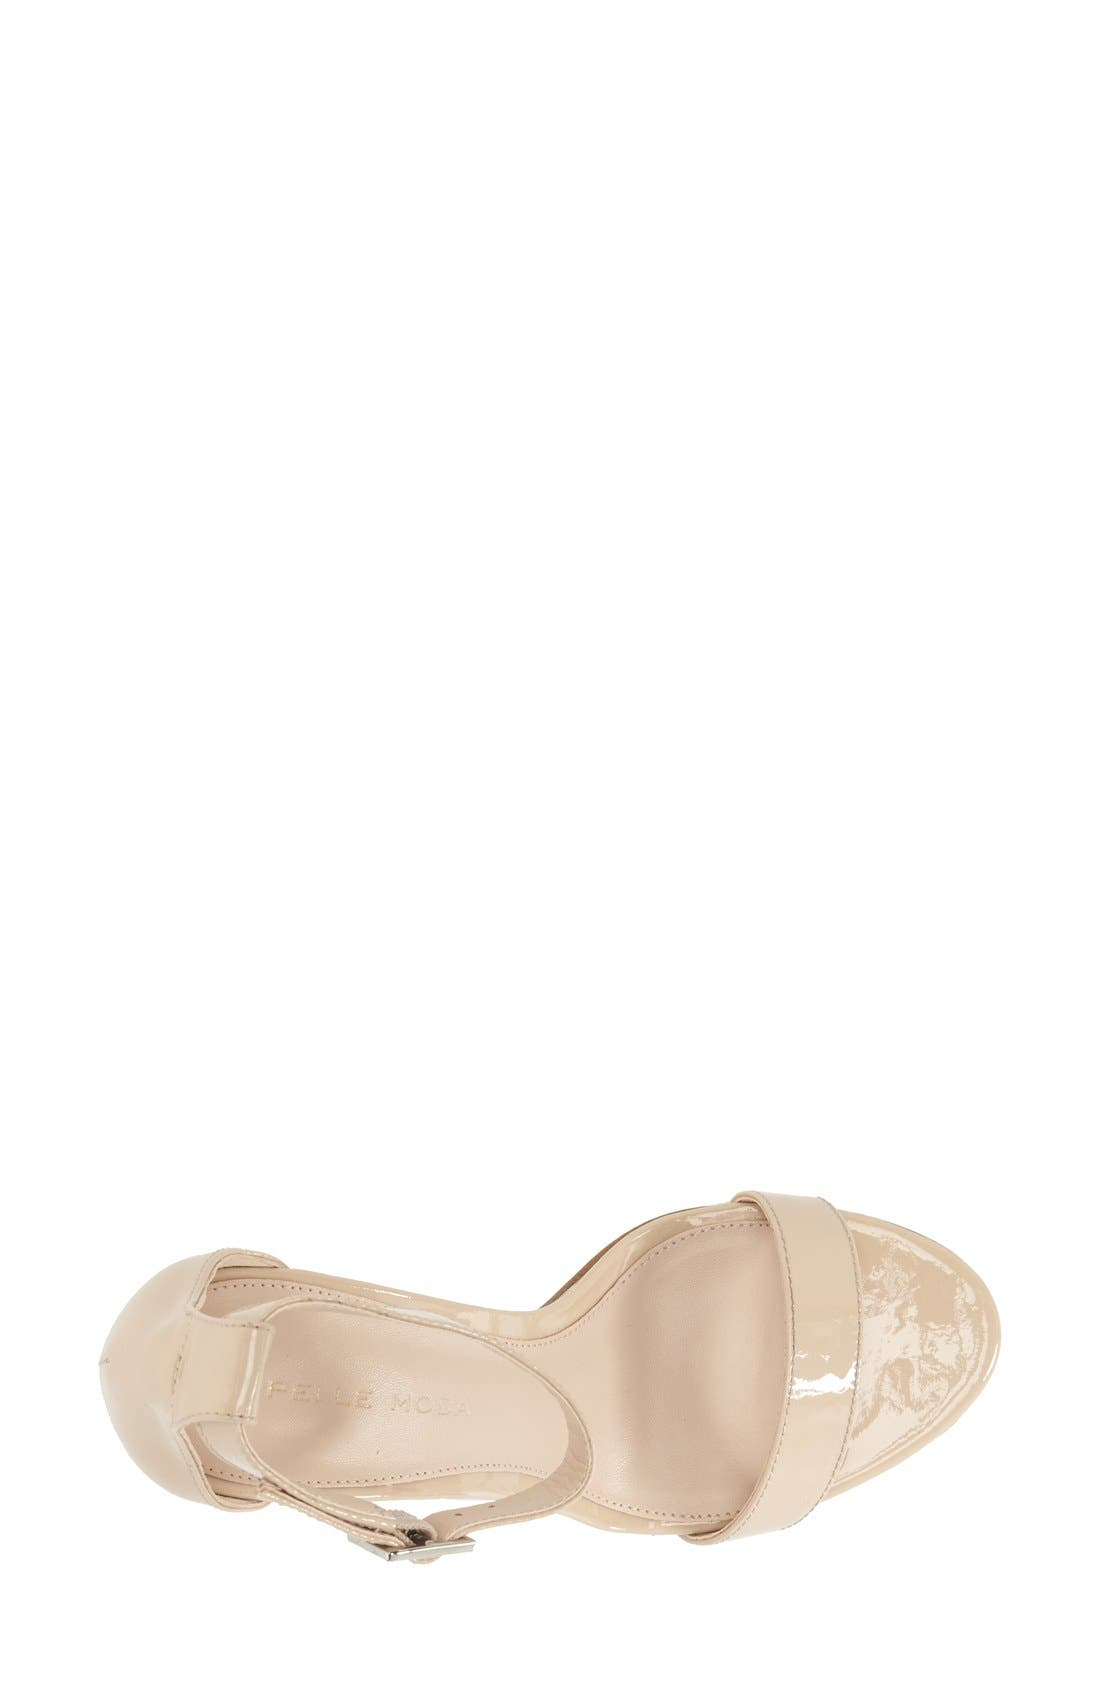 Alternate Image 3  - Pelle Moda Kacey Sandal (Women)